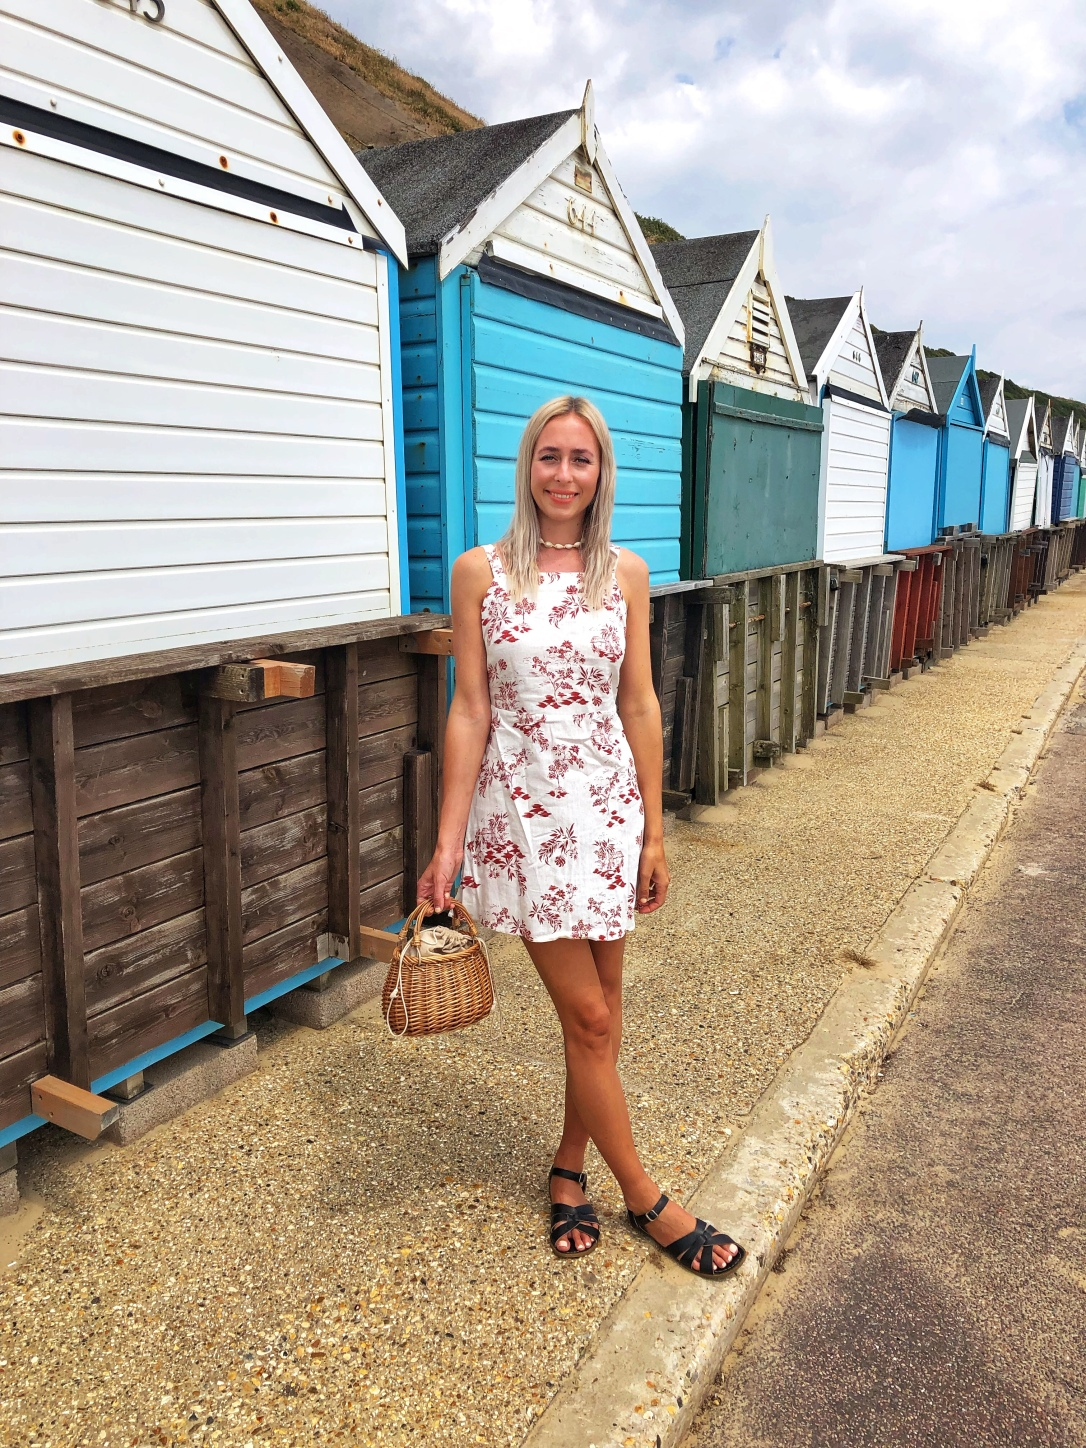 Fashion Nobodyschild beach seaside Boscombe linendress